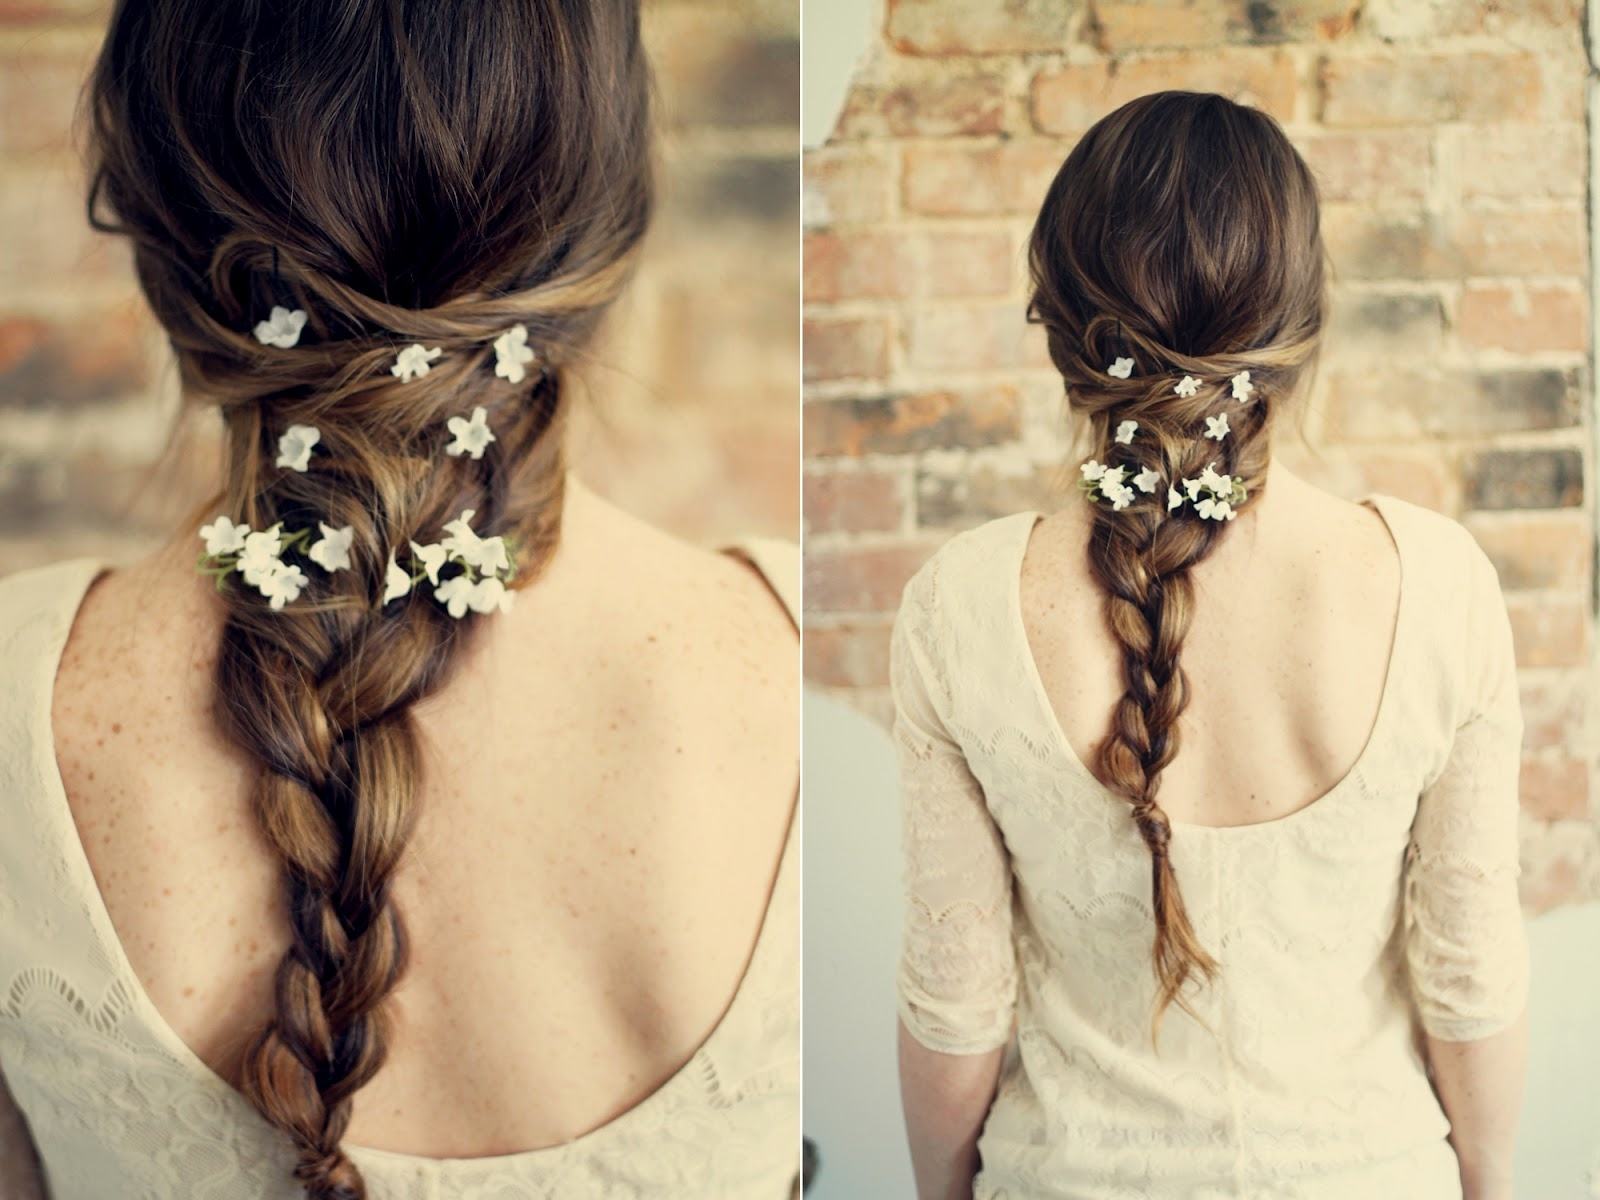 Favorite Braids And Flowers Hairstyles In Summer Nights/floral Hair Tutorial – More Hairstyles (View 9 of 15)